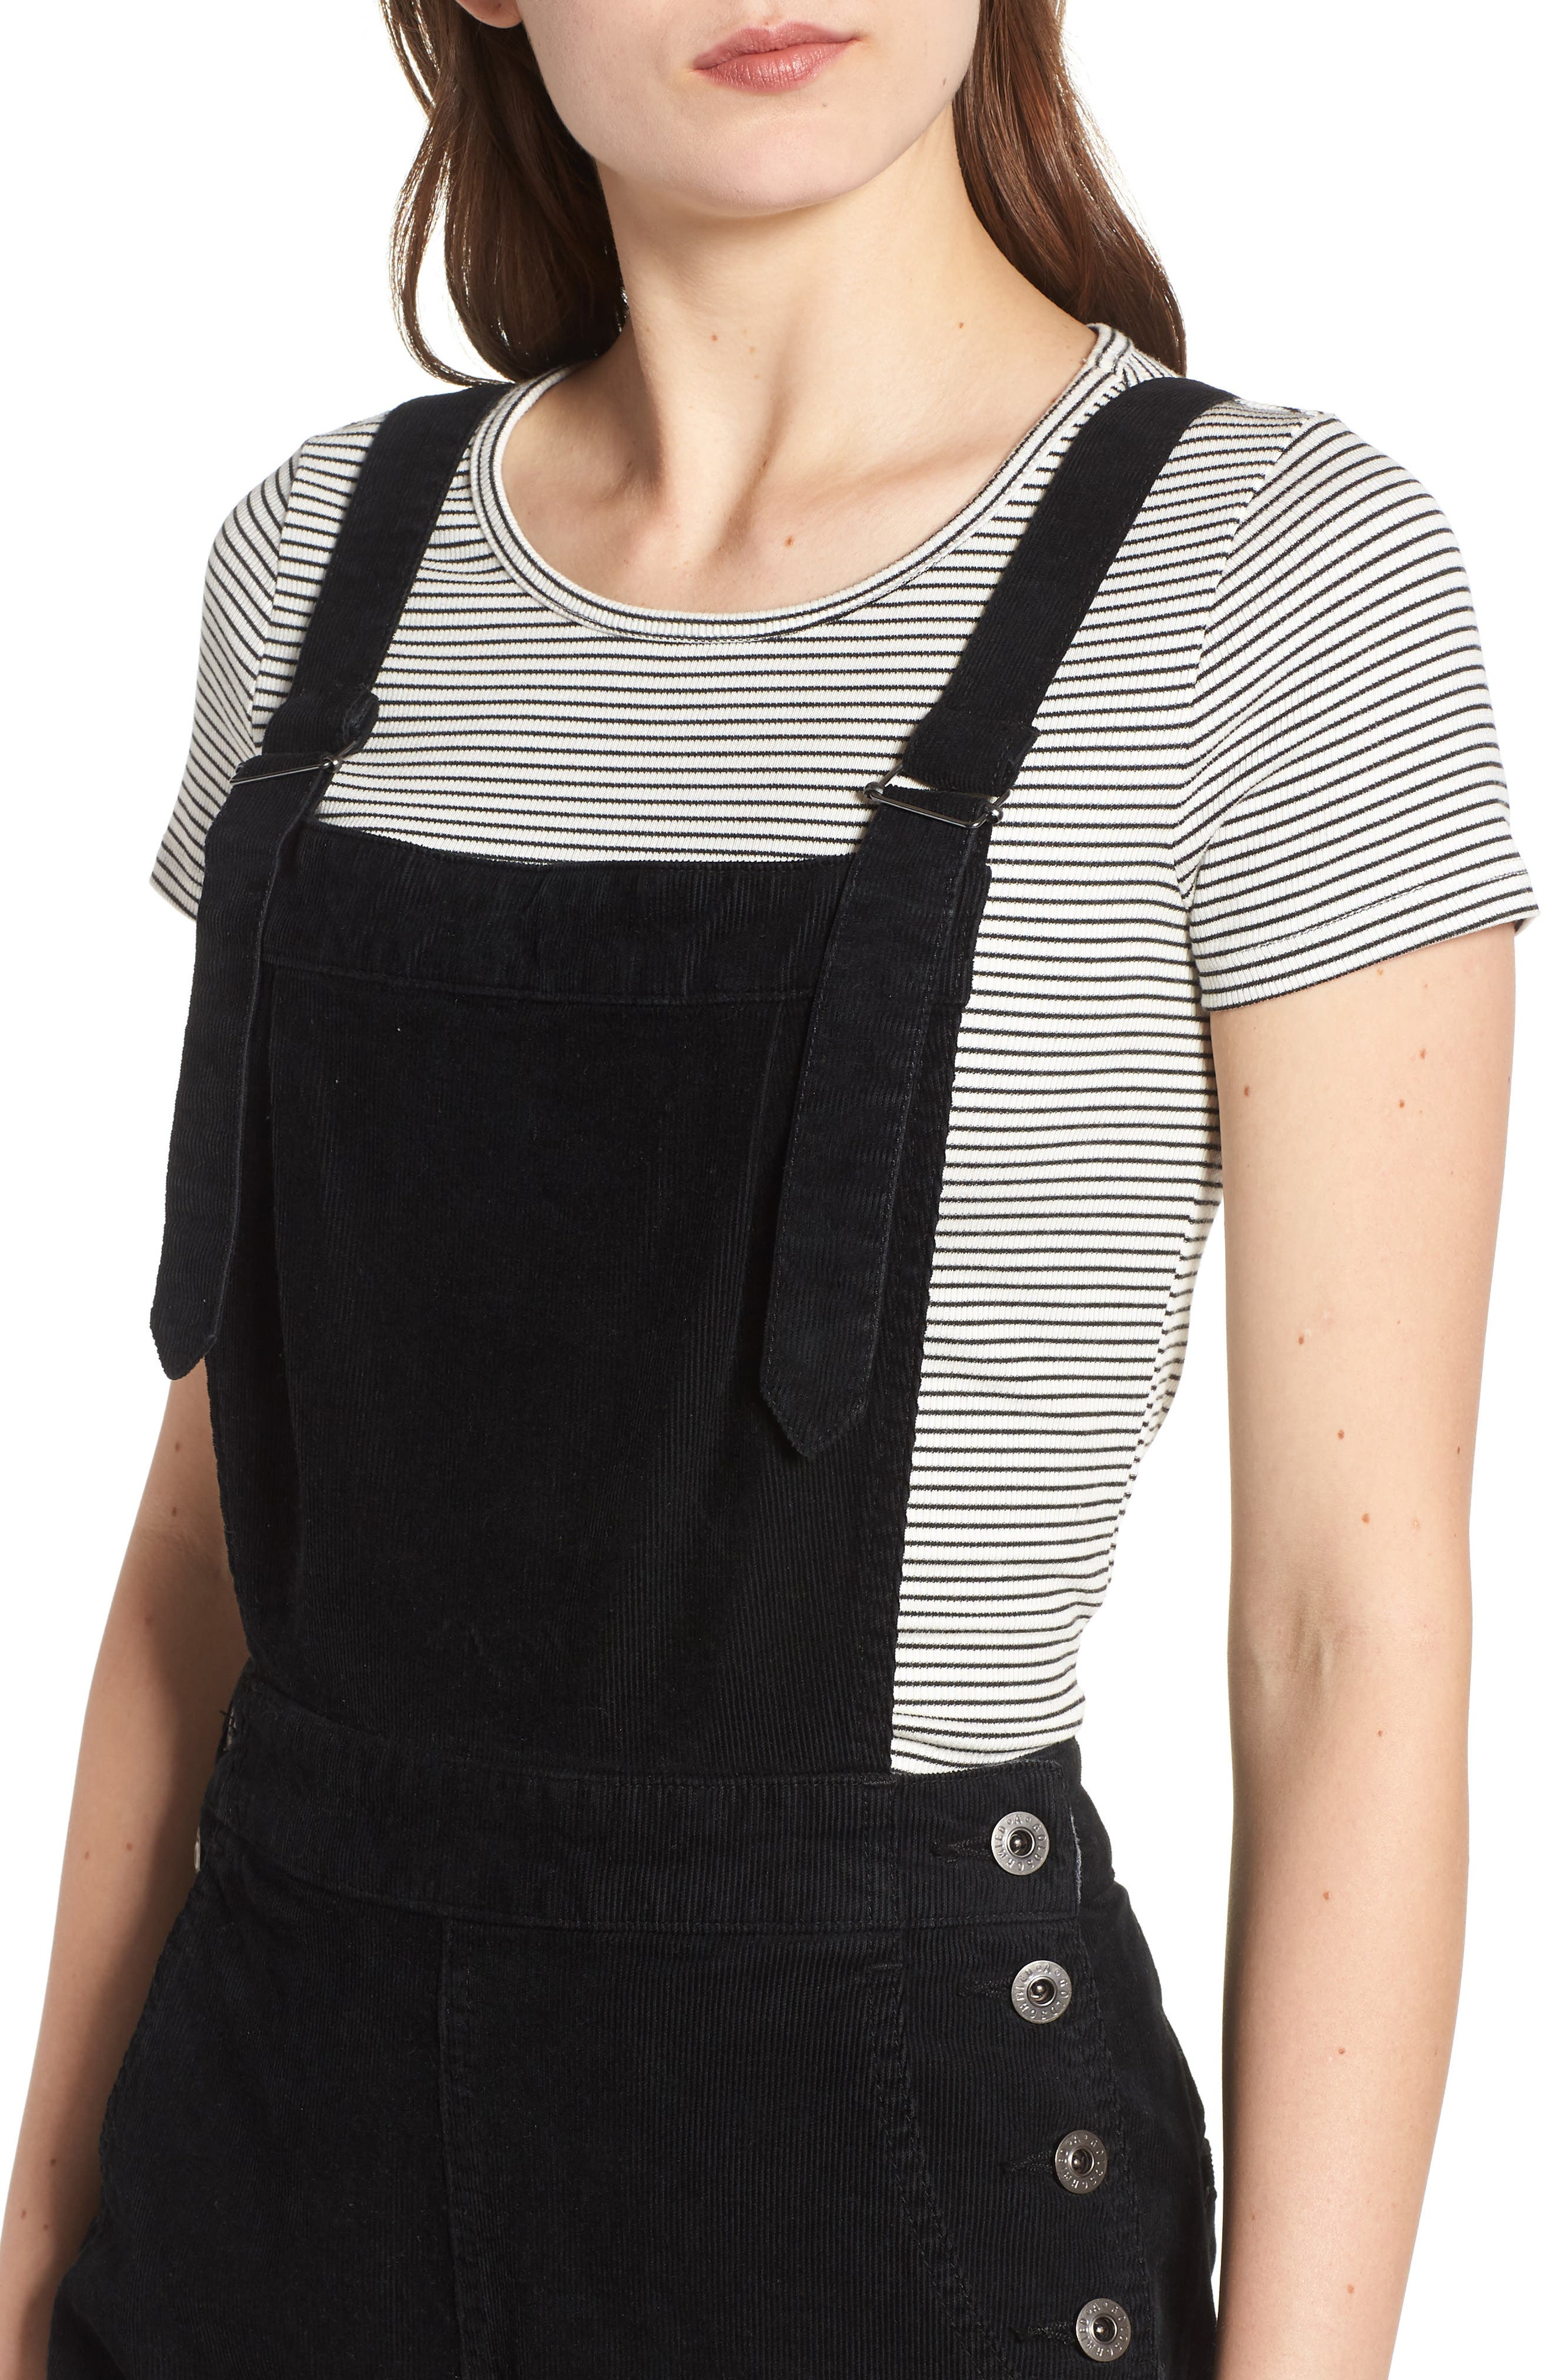 Gwendolyn Corduroy Overalls,                             Alternate thumbnail 4, color,                             018